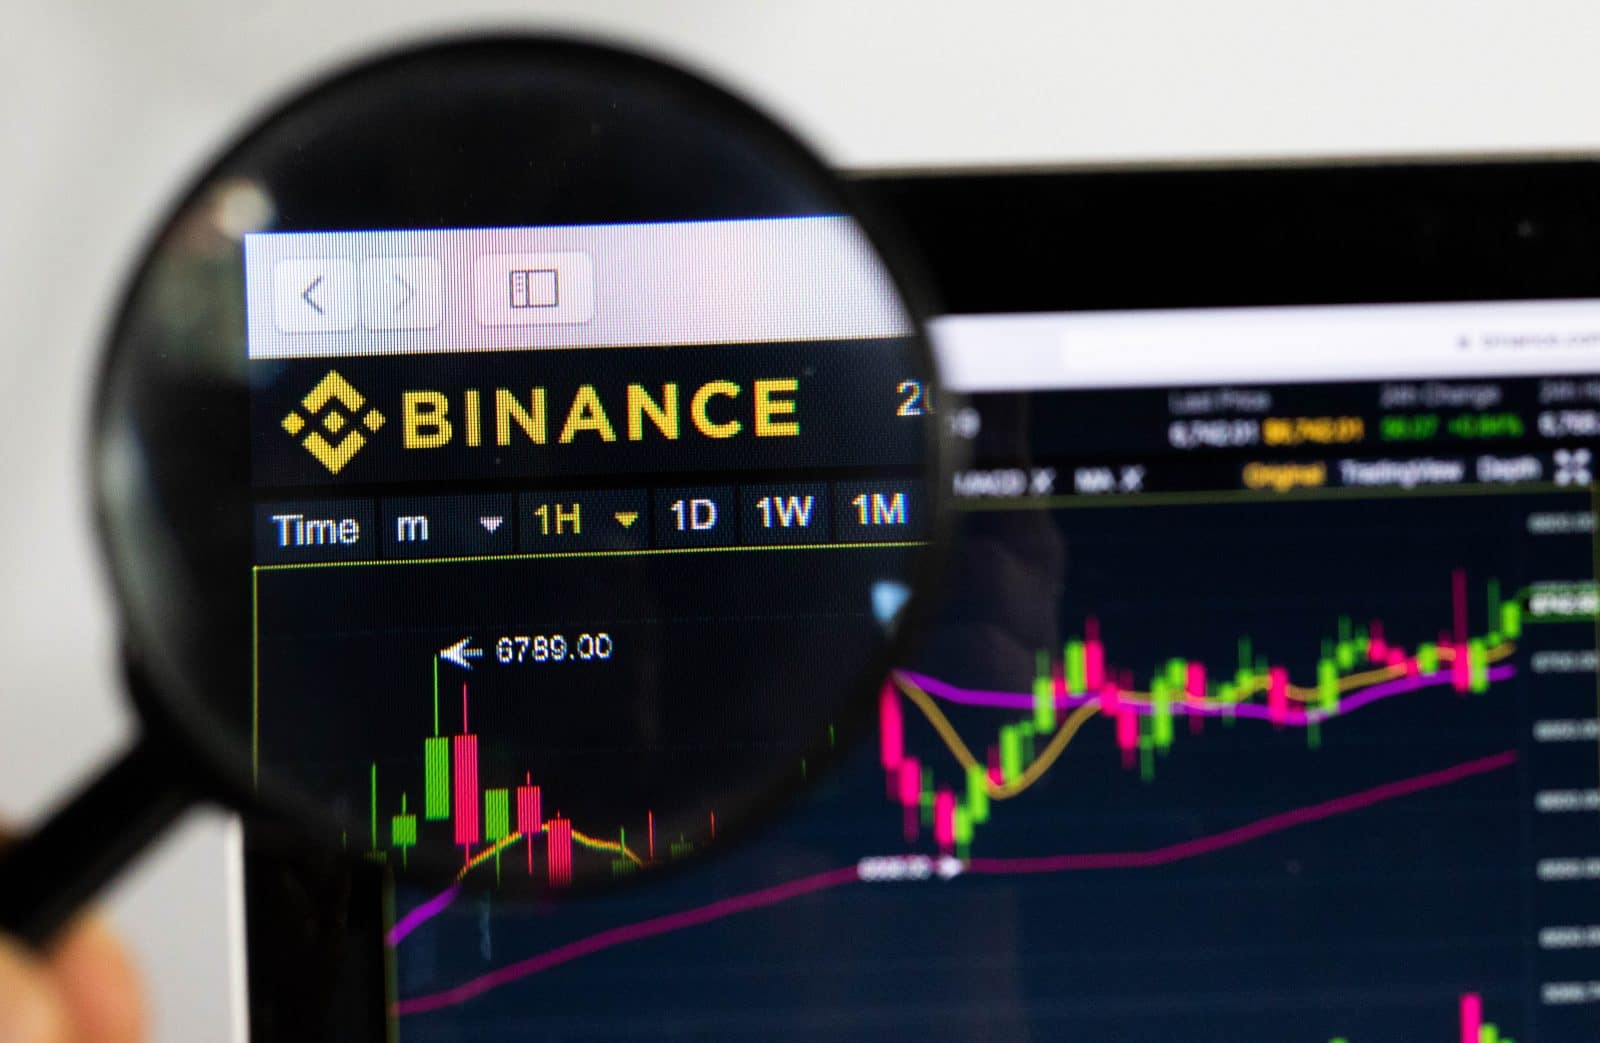 Binance Looks To Disrupt Itself With Decentralized Crypto Exchange